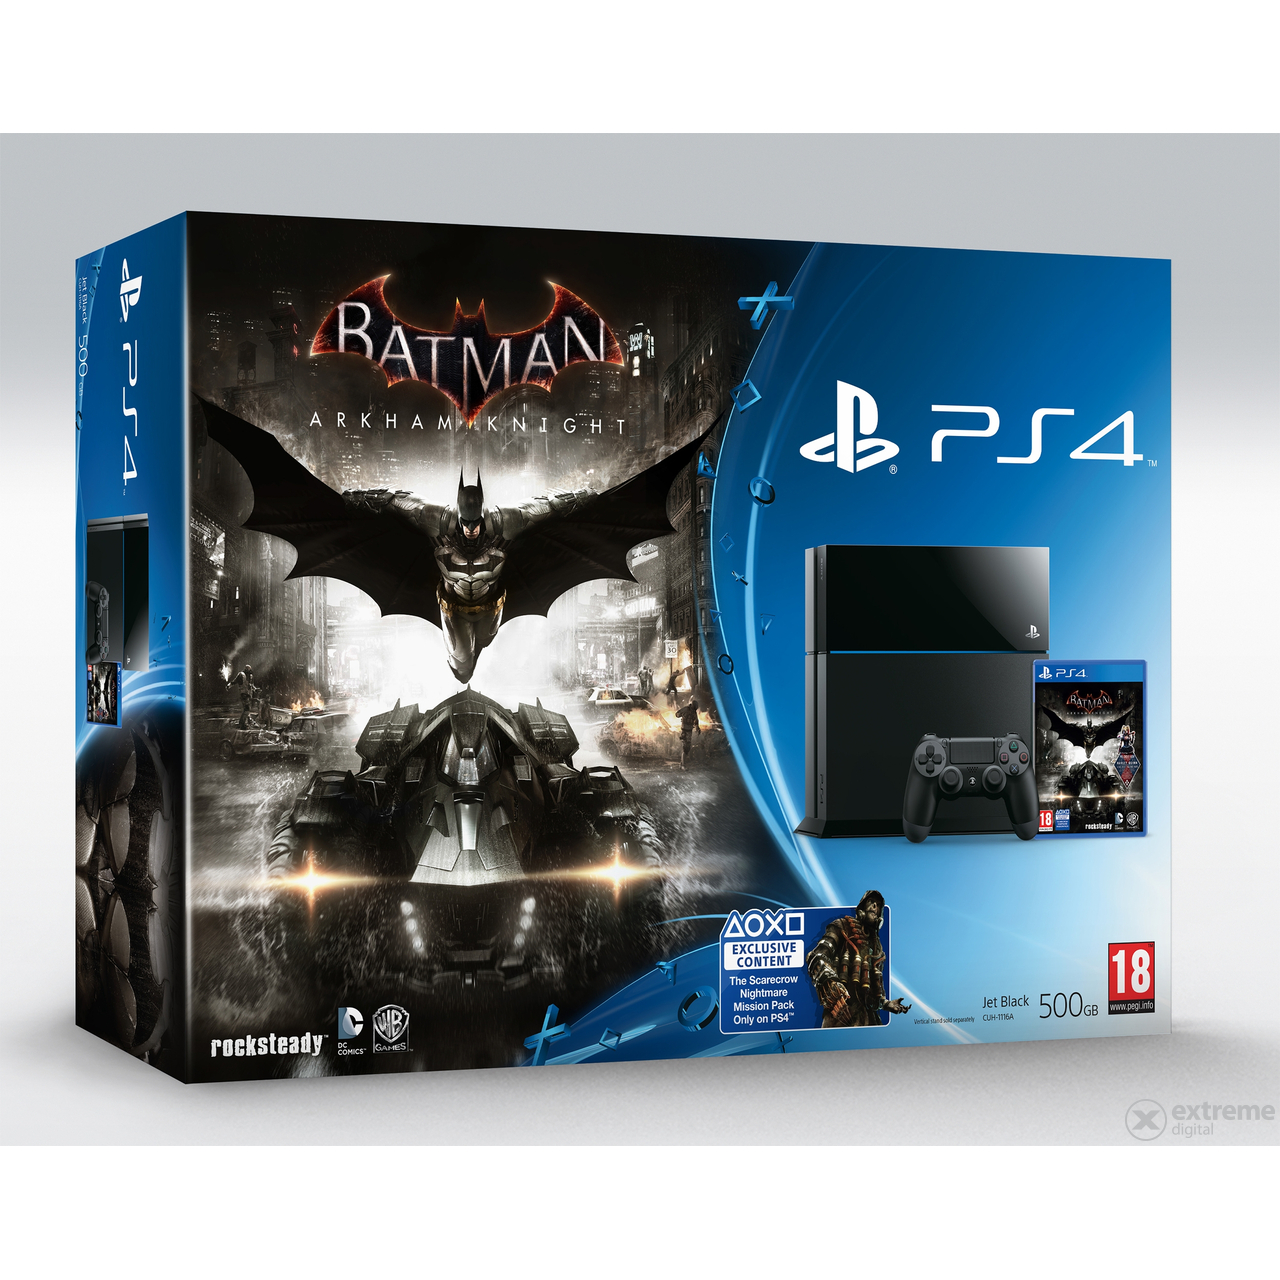 playstation-ps4-500gb-jatekkonzol-dualshock-4-kontrollerel-batman-arkham-knight-jatekszoftverrel-_3ed47c69.jpg